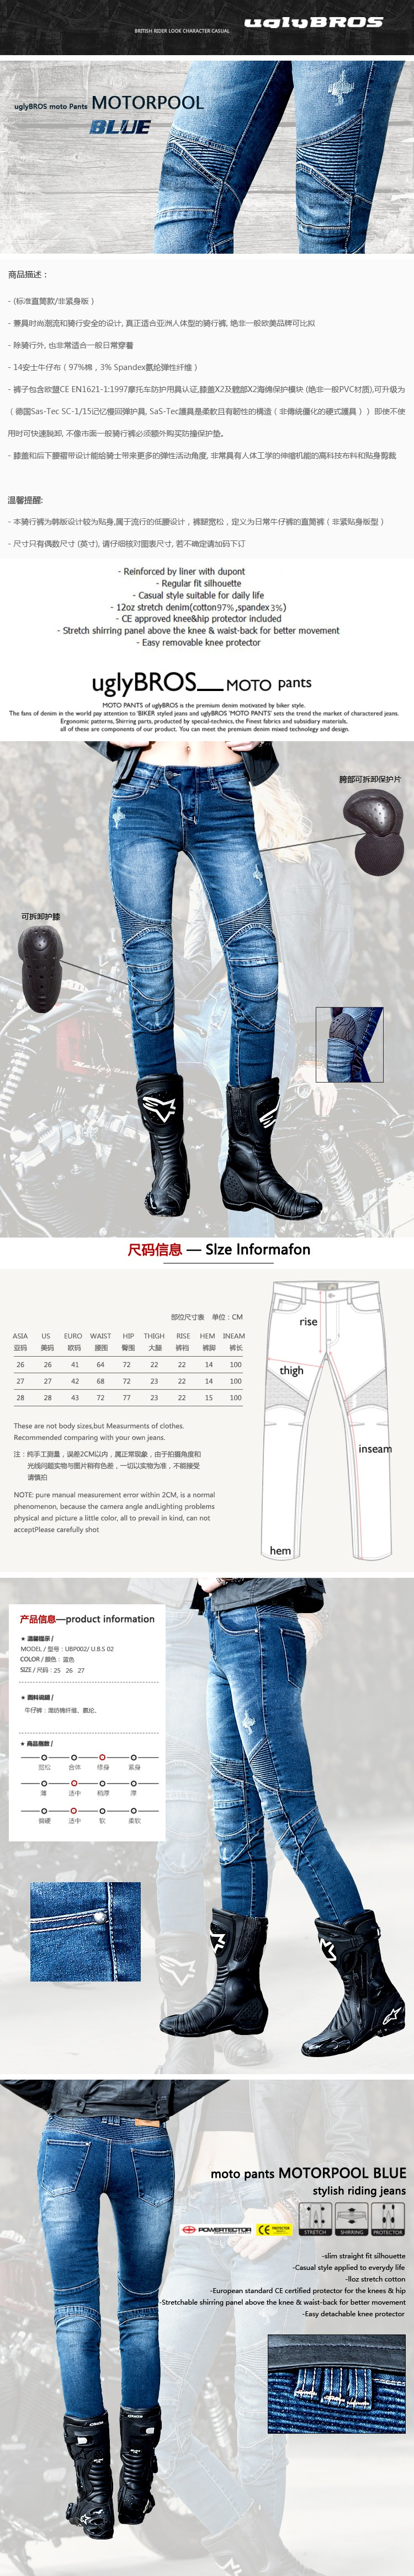 Hot sales 2015 New uglyBROS Featherbed women jeans Riding a motorcycle jeans trousers women pants motor pants protection pants